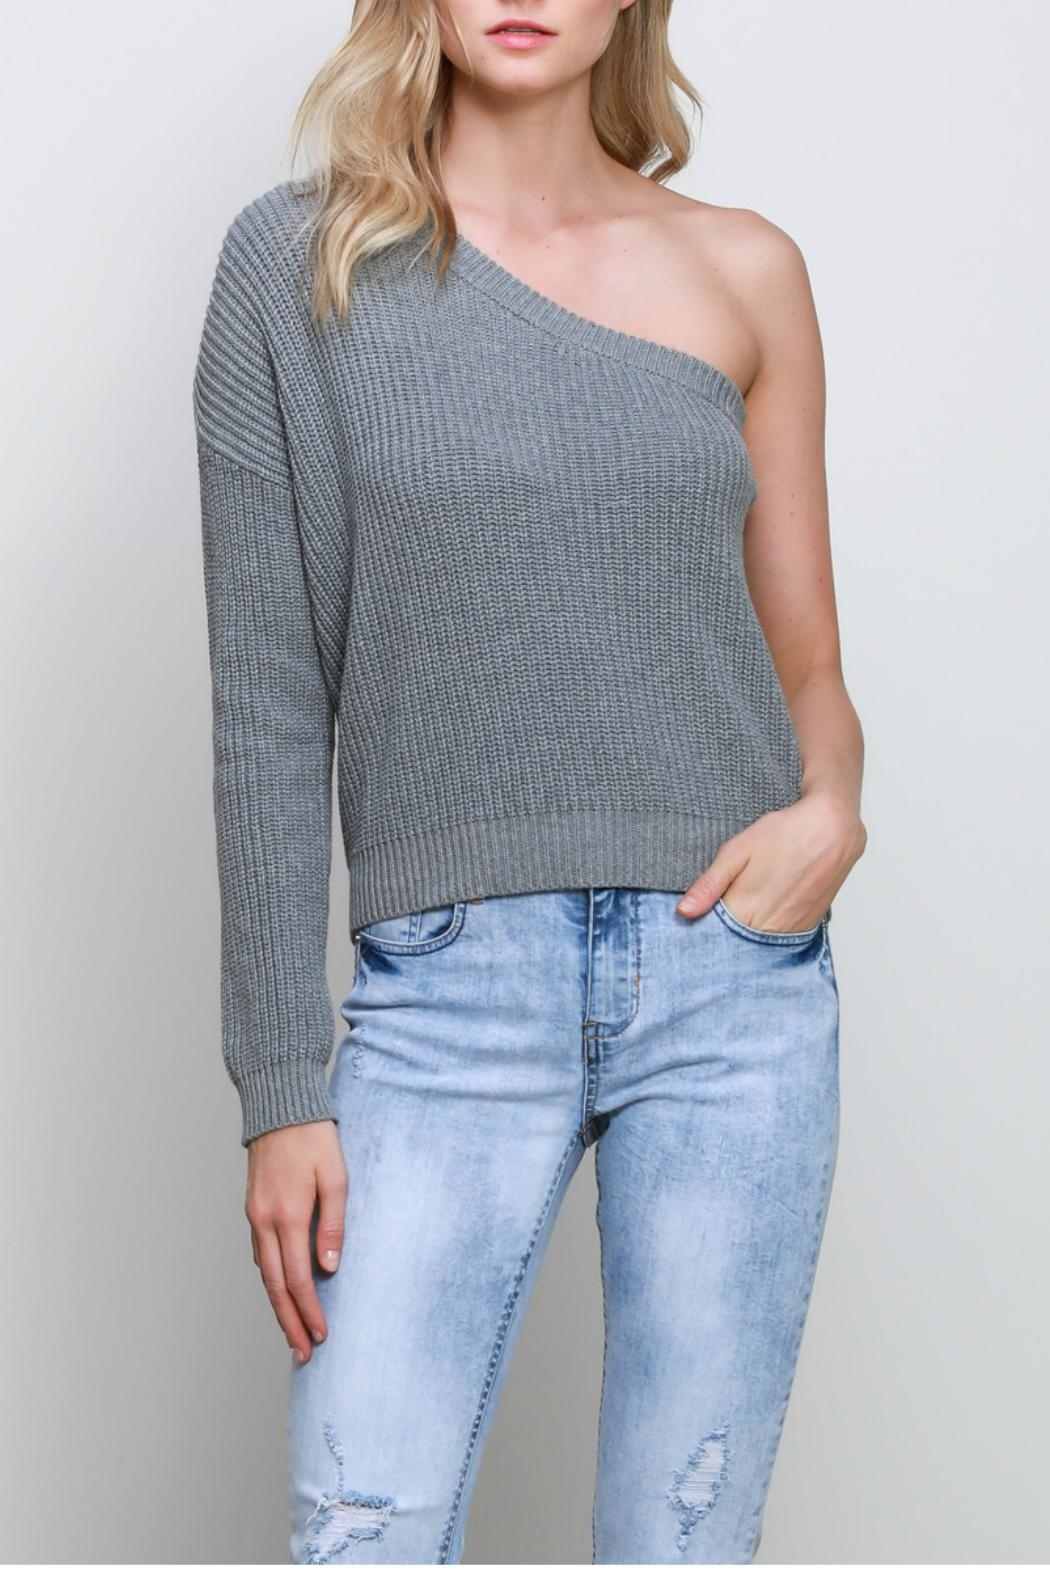 Mustard Seed One Shoulder Sweater - Main Image